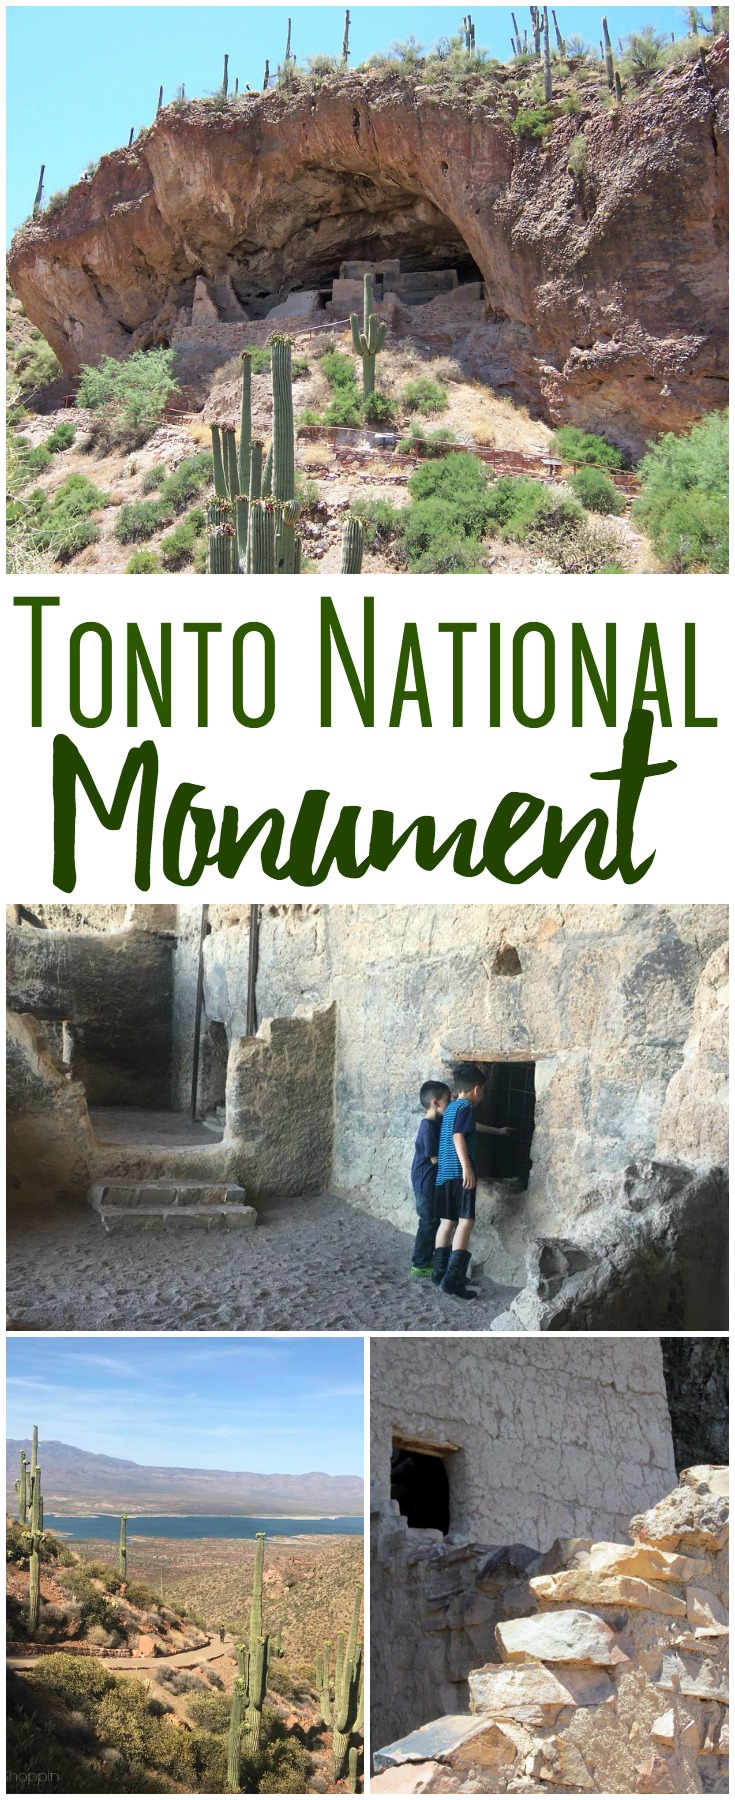 The Tonto National Monument is a National Monument in the Superstition Mountains, in the Gila County of central Arizona.